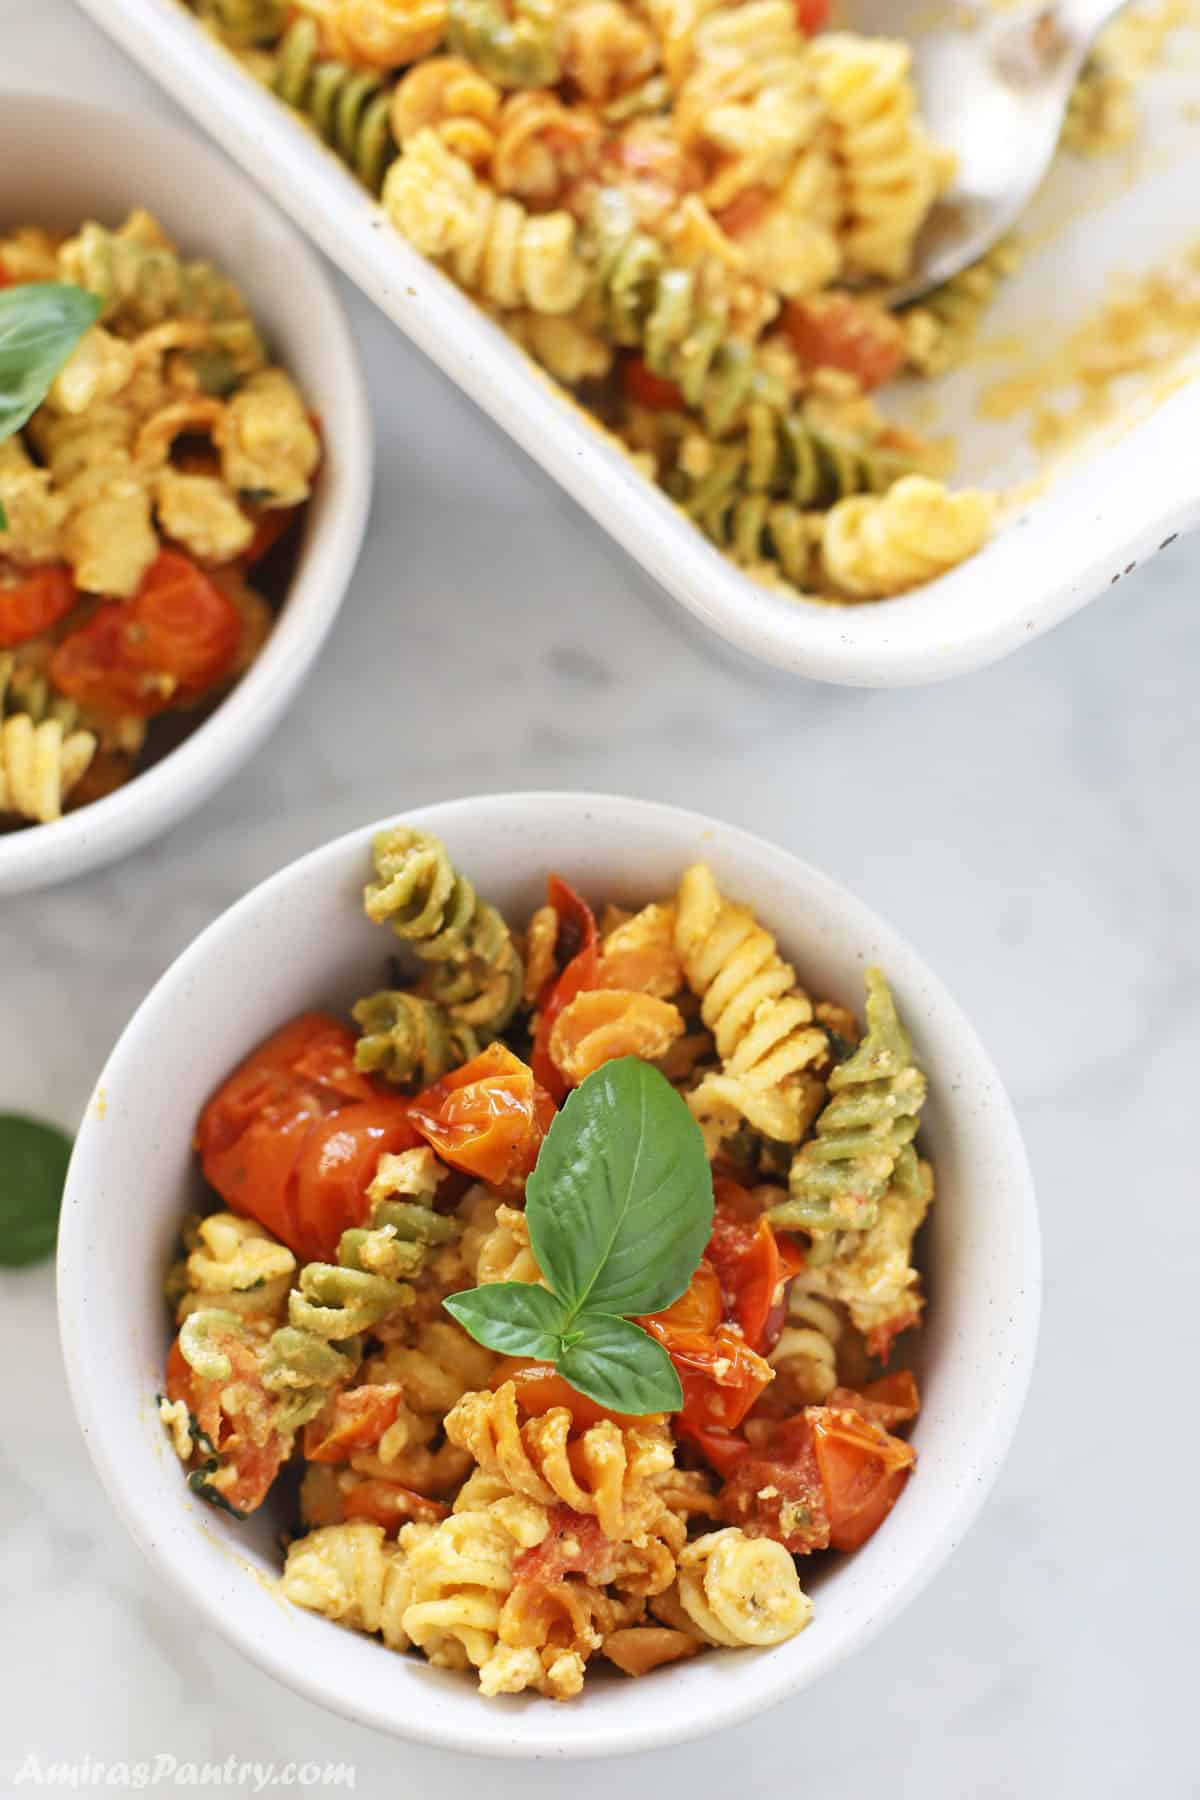 baked feta pasta in a white bowl garnished with fresh basil.